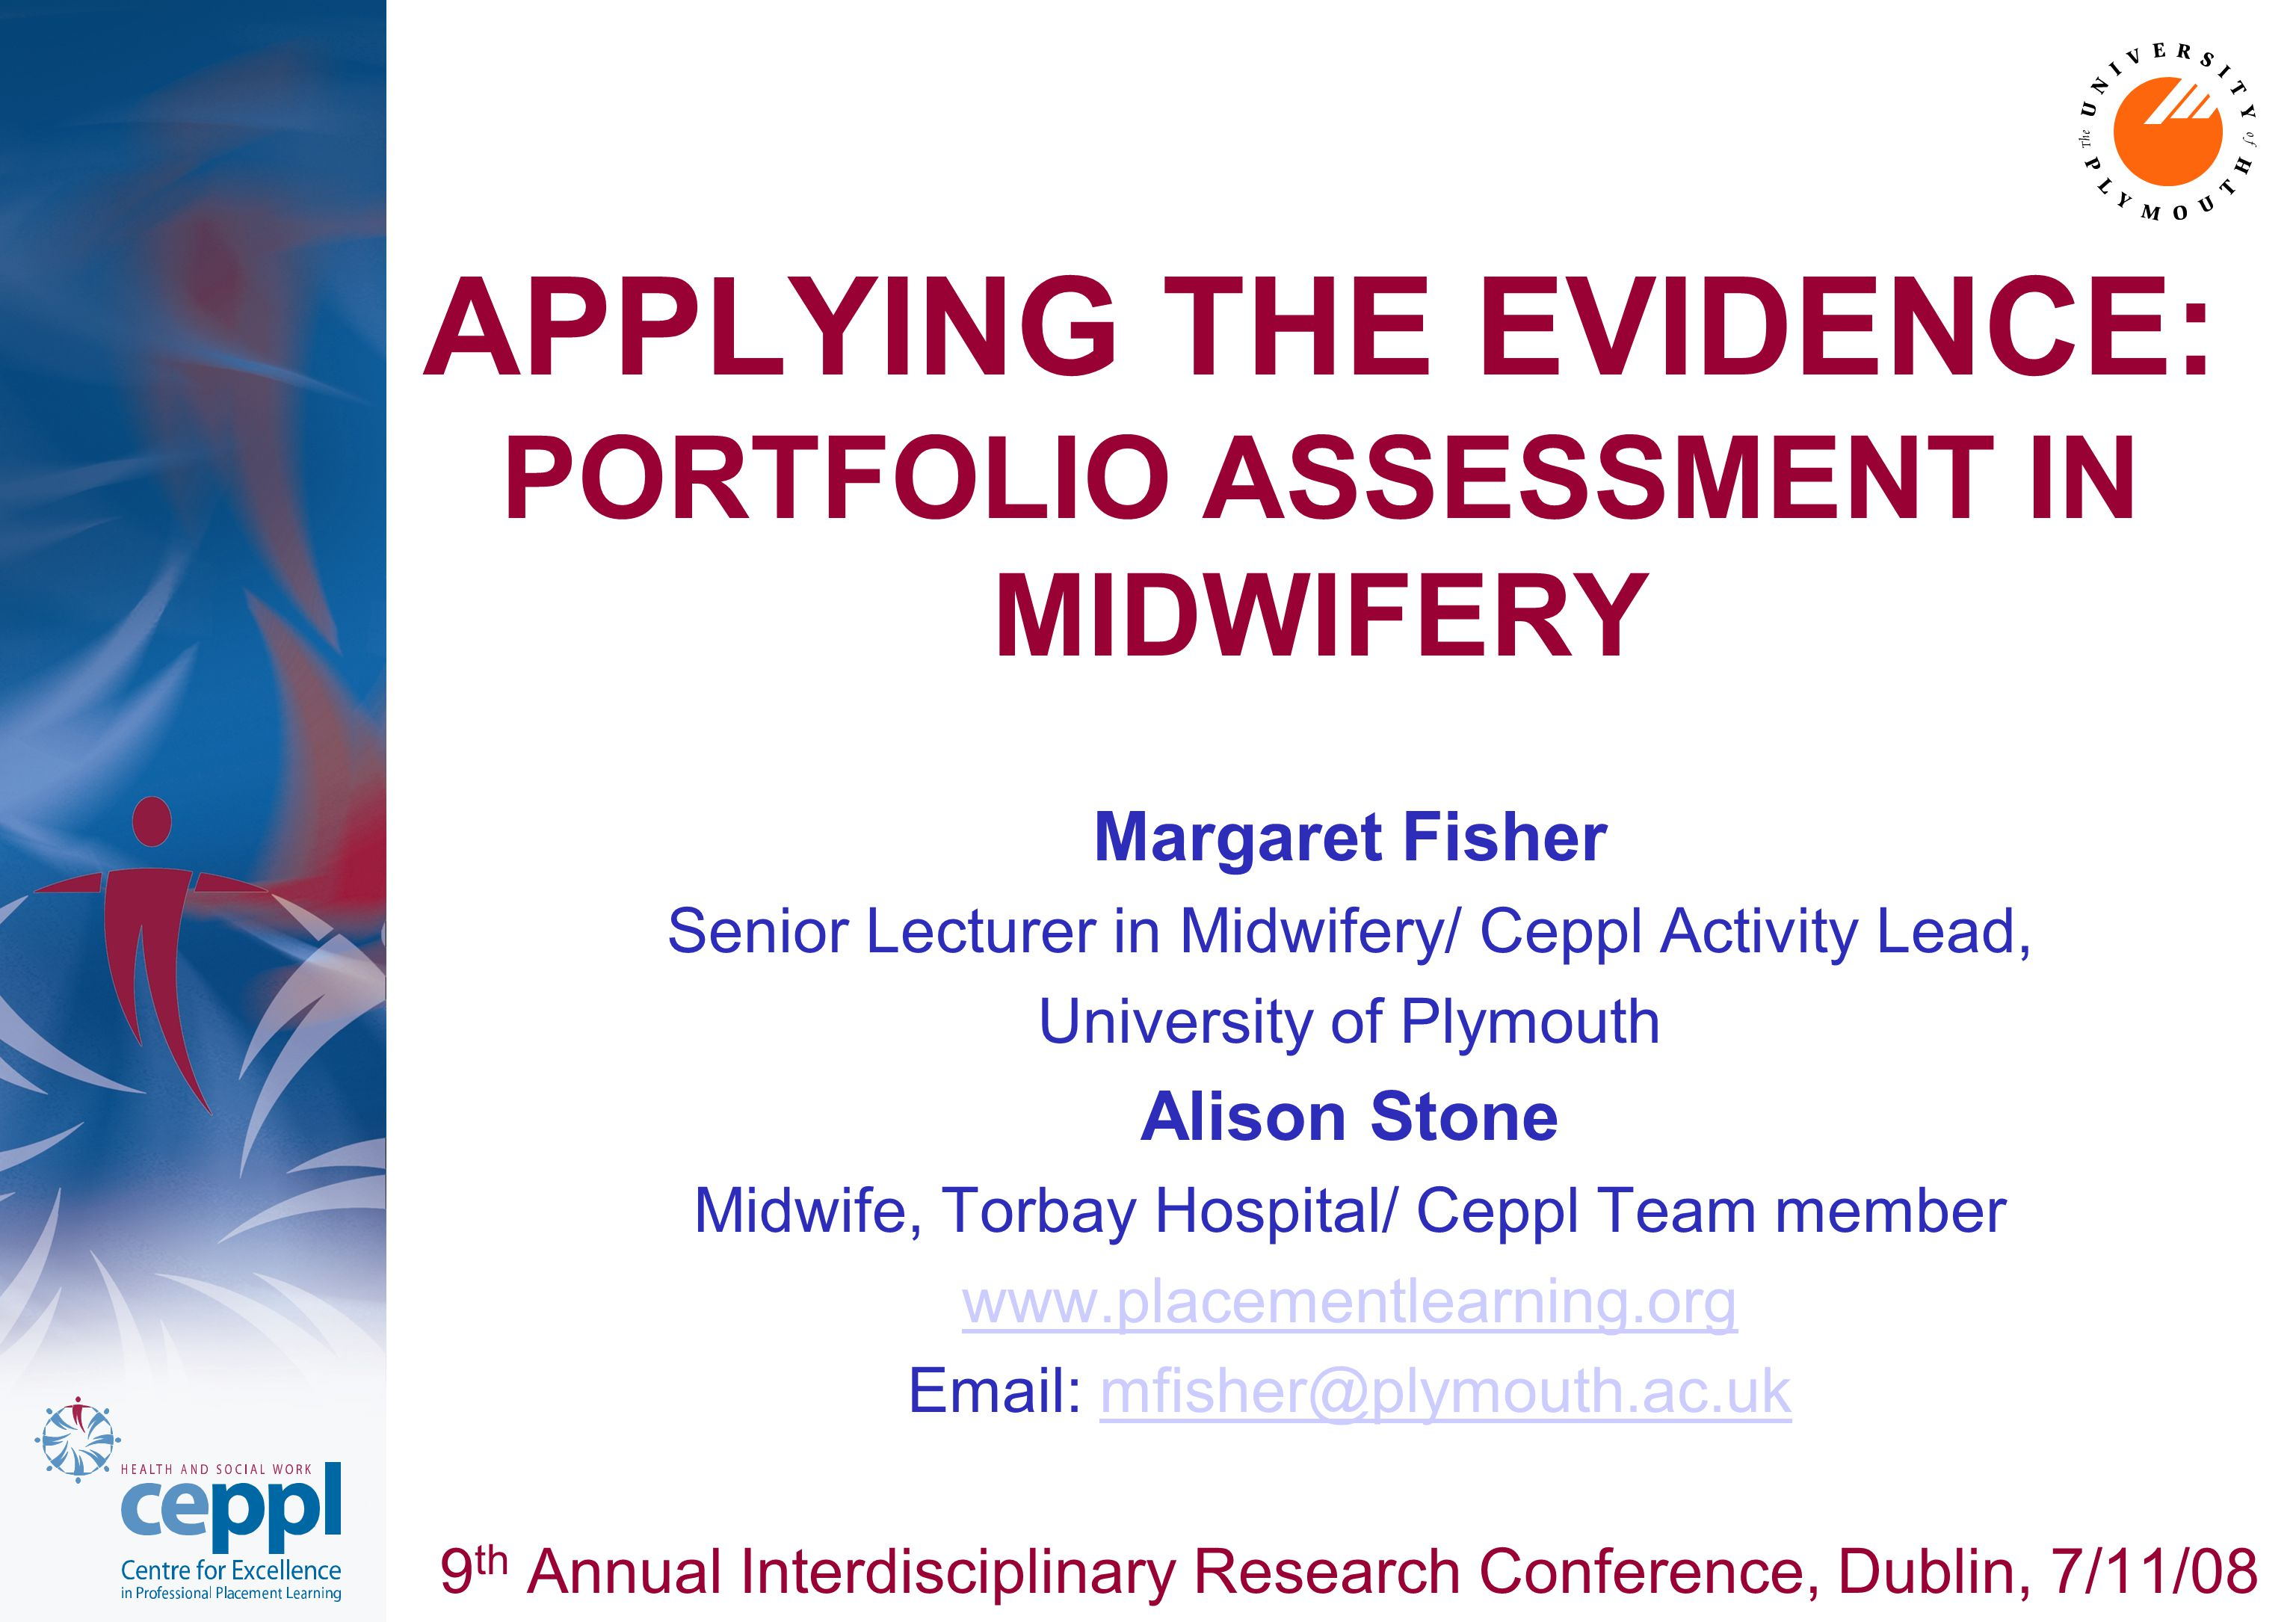 APPLYING THE EVIDENCE: PORTFOLIO ASSESSMENT IN MIDWIFERY Margaret Fisher Senior Lecturer in Midwifery/ Ceppl Activity Lead, University of Plymouth Alison Stone Midwife, Torbay Hospital/ Ceppl Team member www.placementlearning.org Email: mfisher@plymouth.ac.ukmfisher@plymouth.ac.uk 9 th Annual Interdisciplinary Research Conference, Dublin, 7/11/08